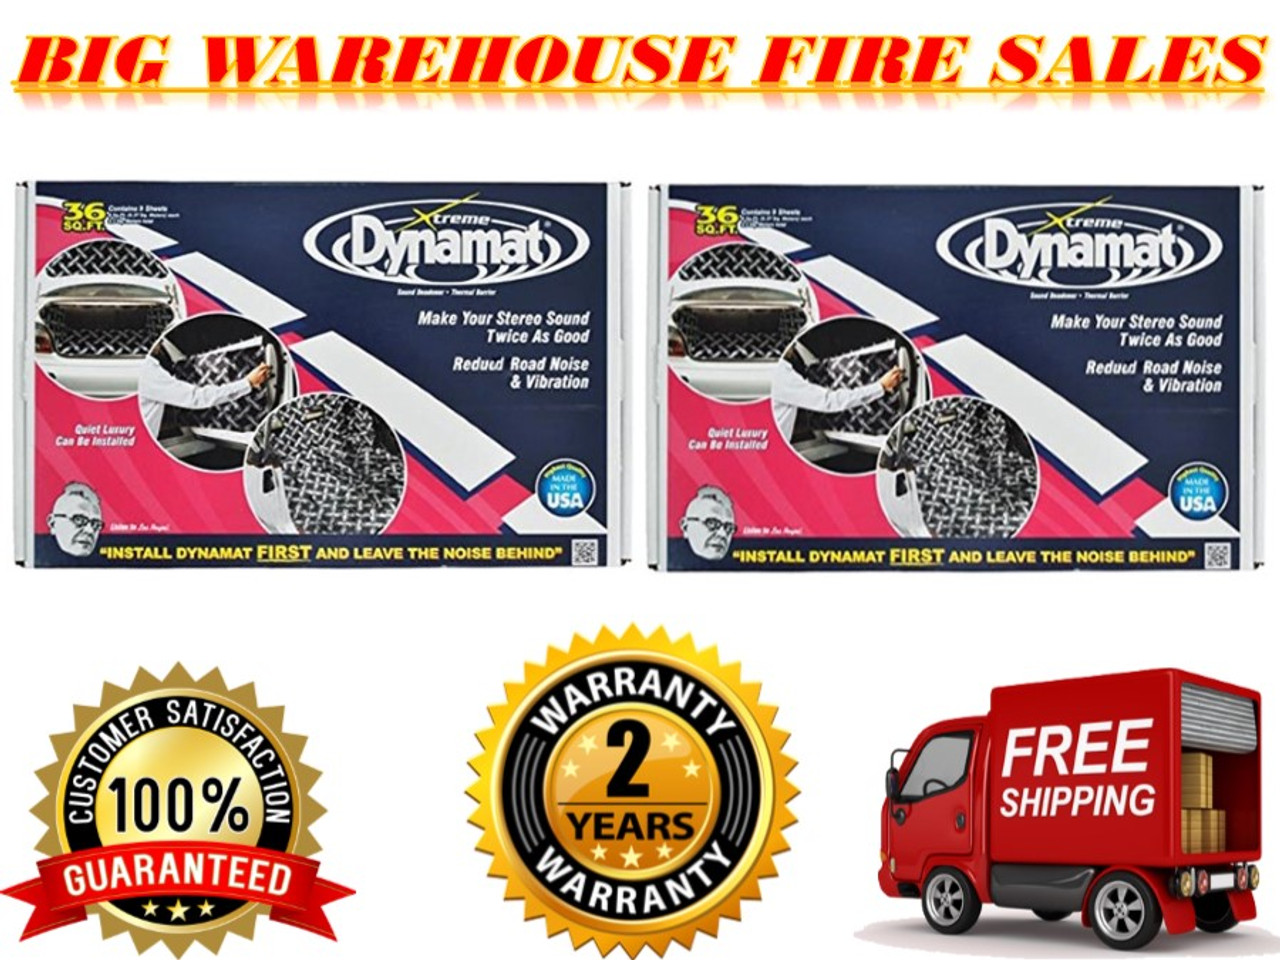 2 Original brand new Dynamat 10455 Xtreme Bulk Pack 36 SQ FT (9 Sheets)